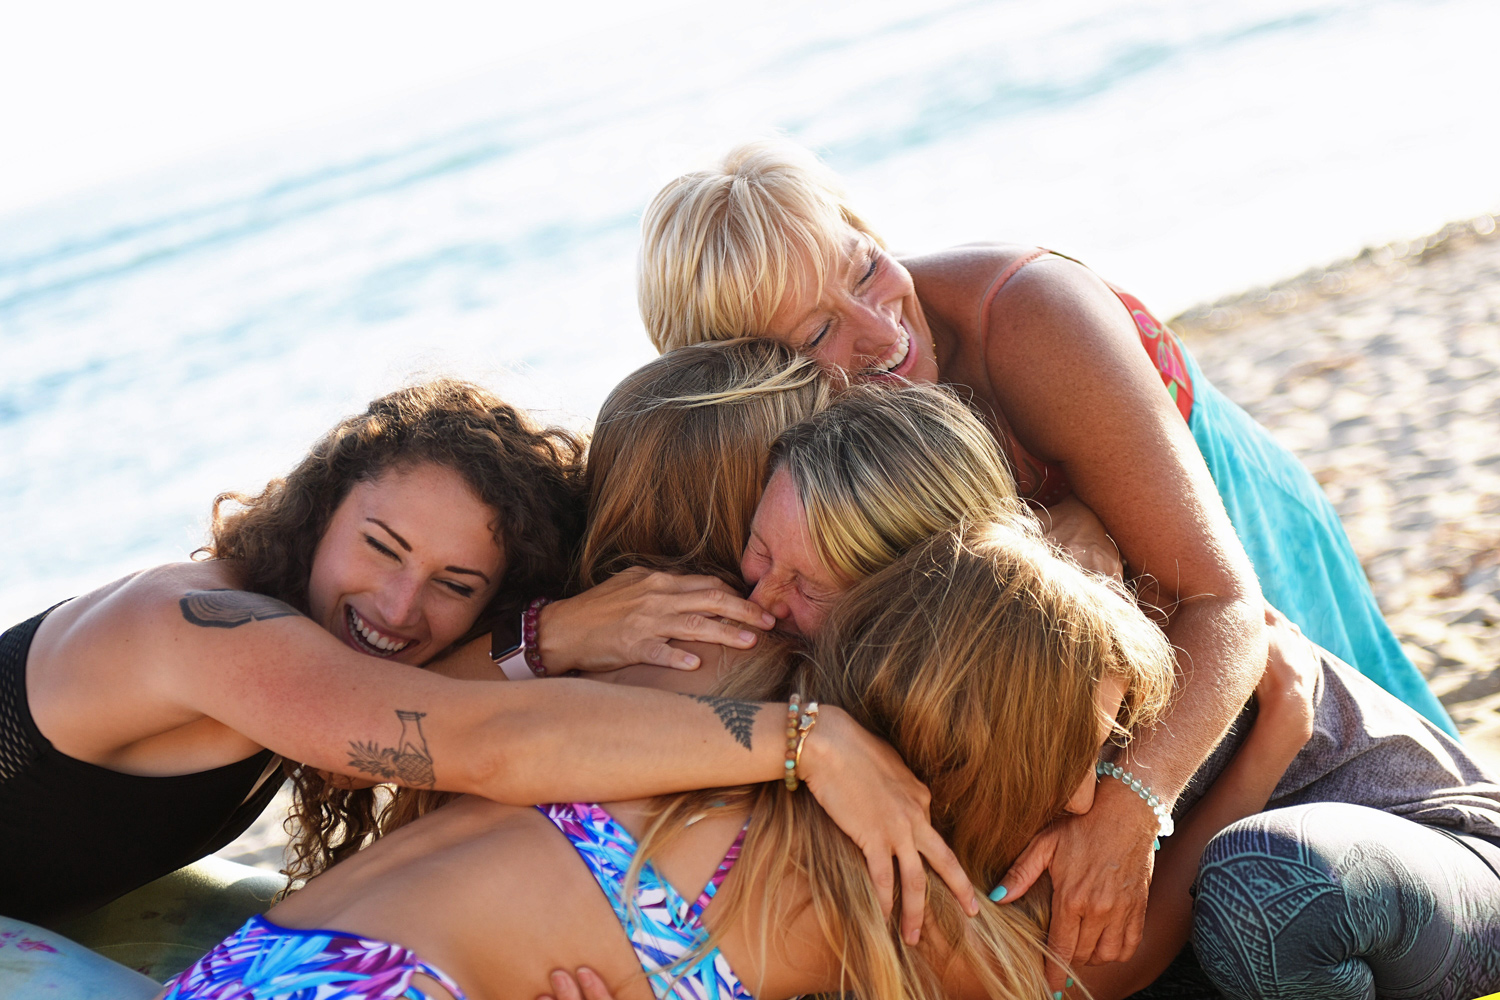 Experiencing the pure stoke of community of supportive, encouraging women